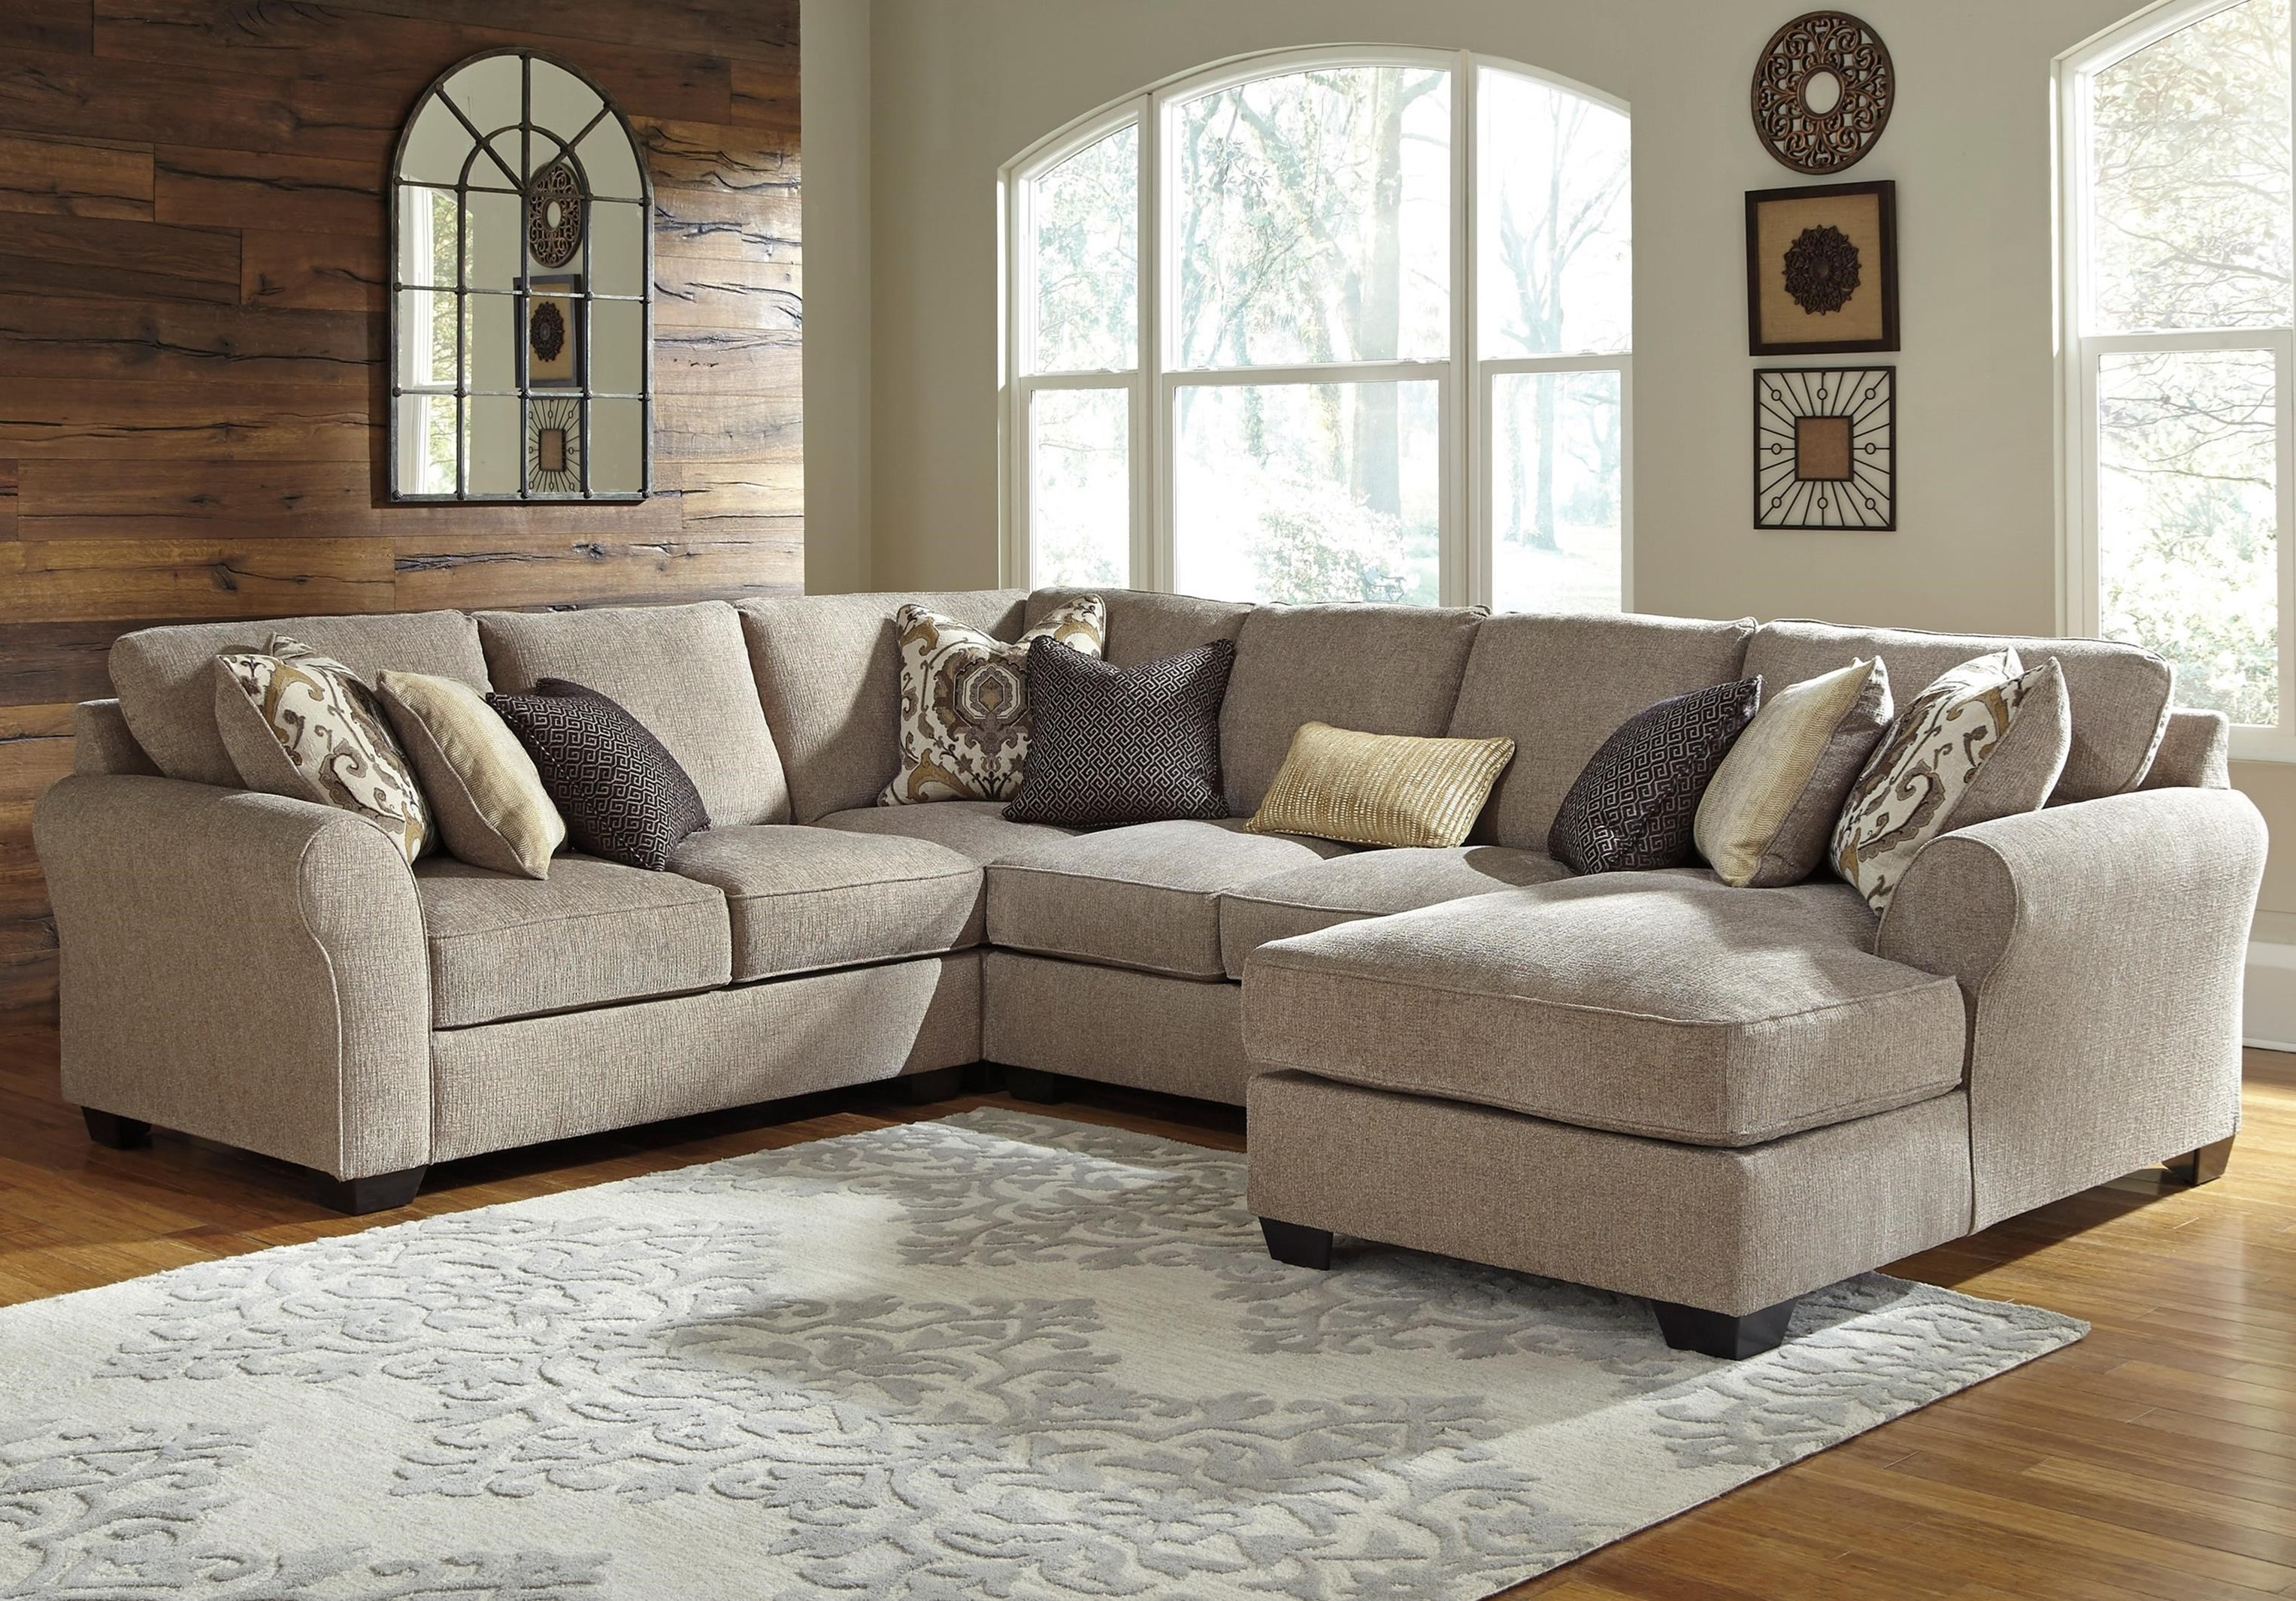 Pantomine 4 Piece Sectional With Right Chaise   Becker Furniture World    Sofa Sectional